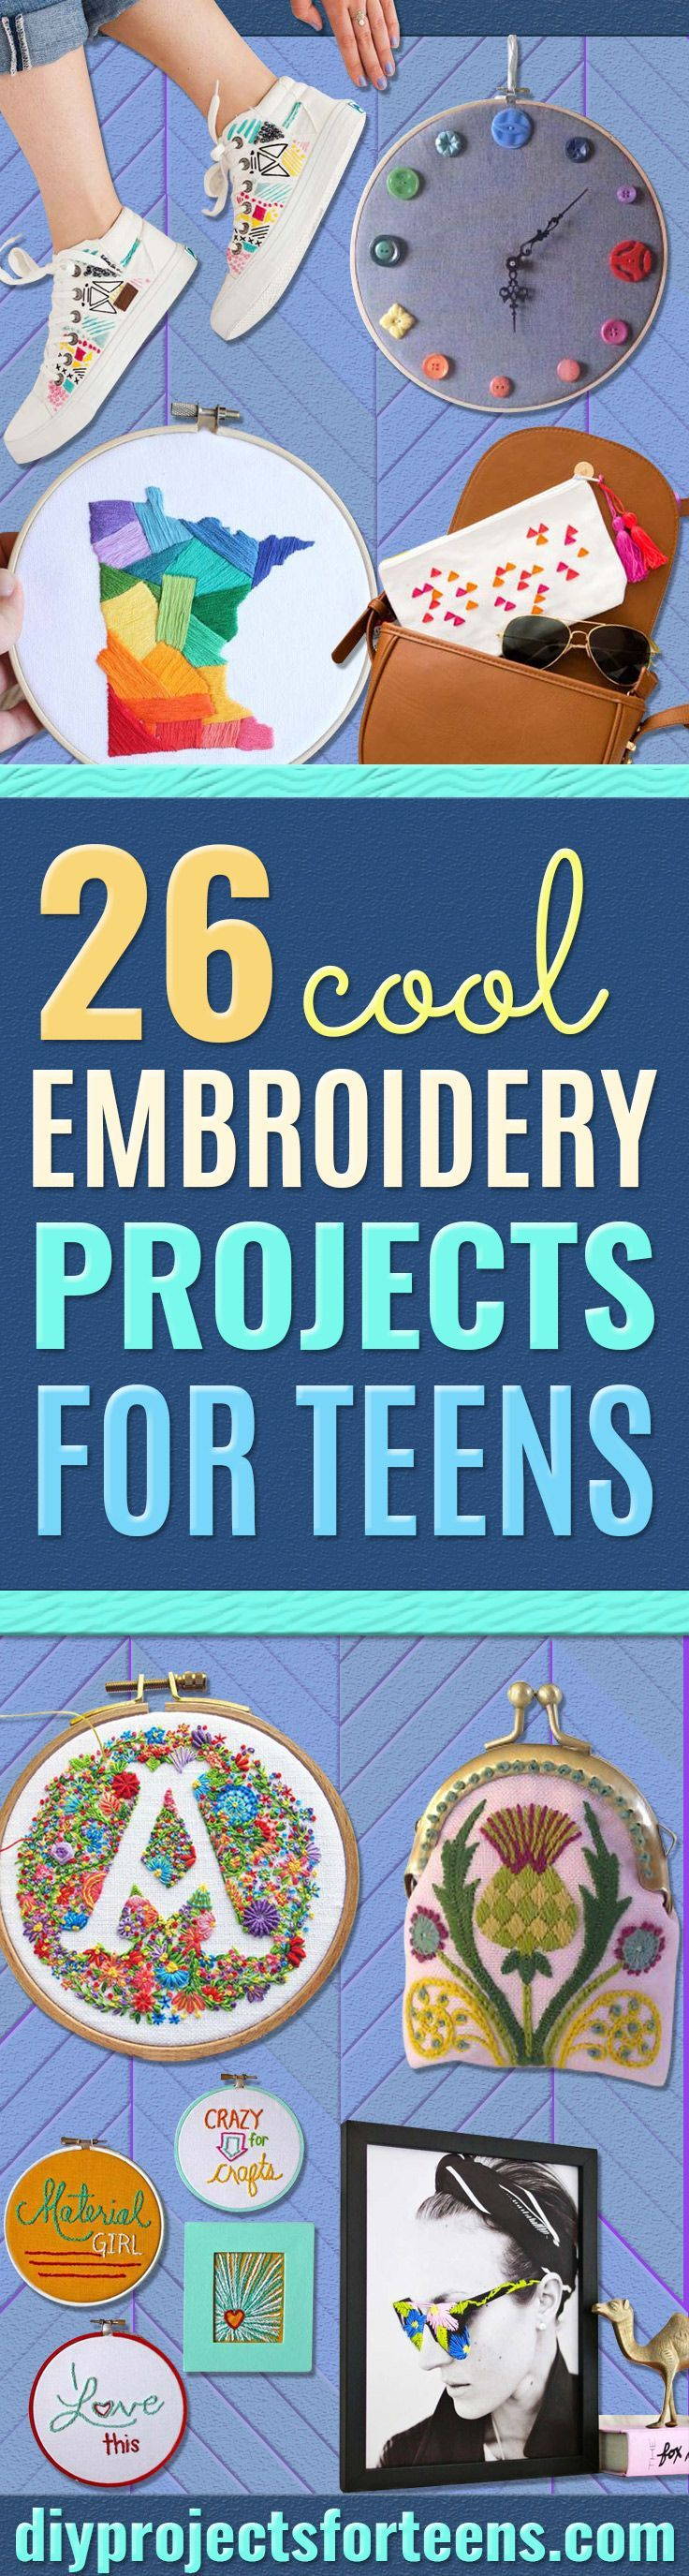 1000 images about diy for teens on pinterest diy for Diy projects for tweens